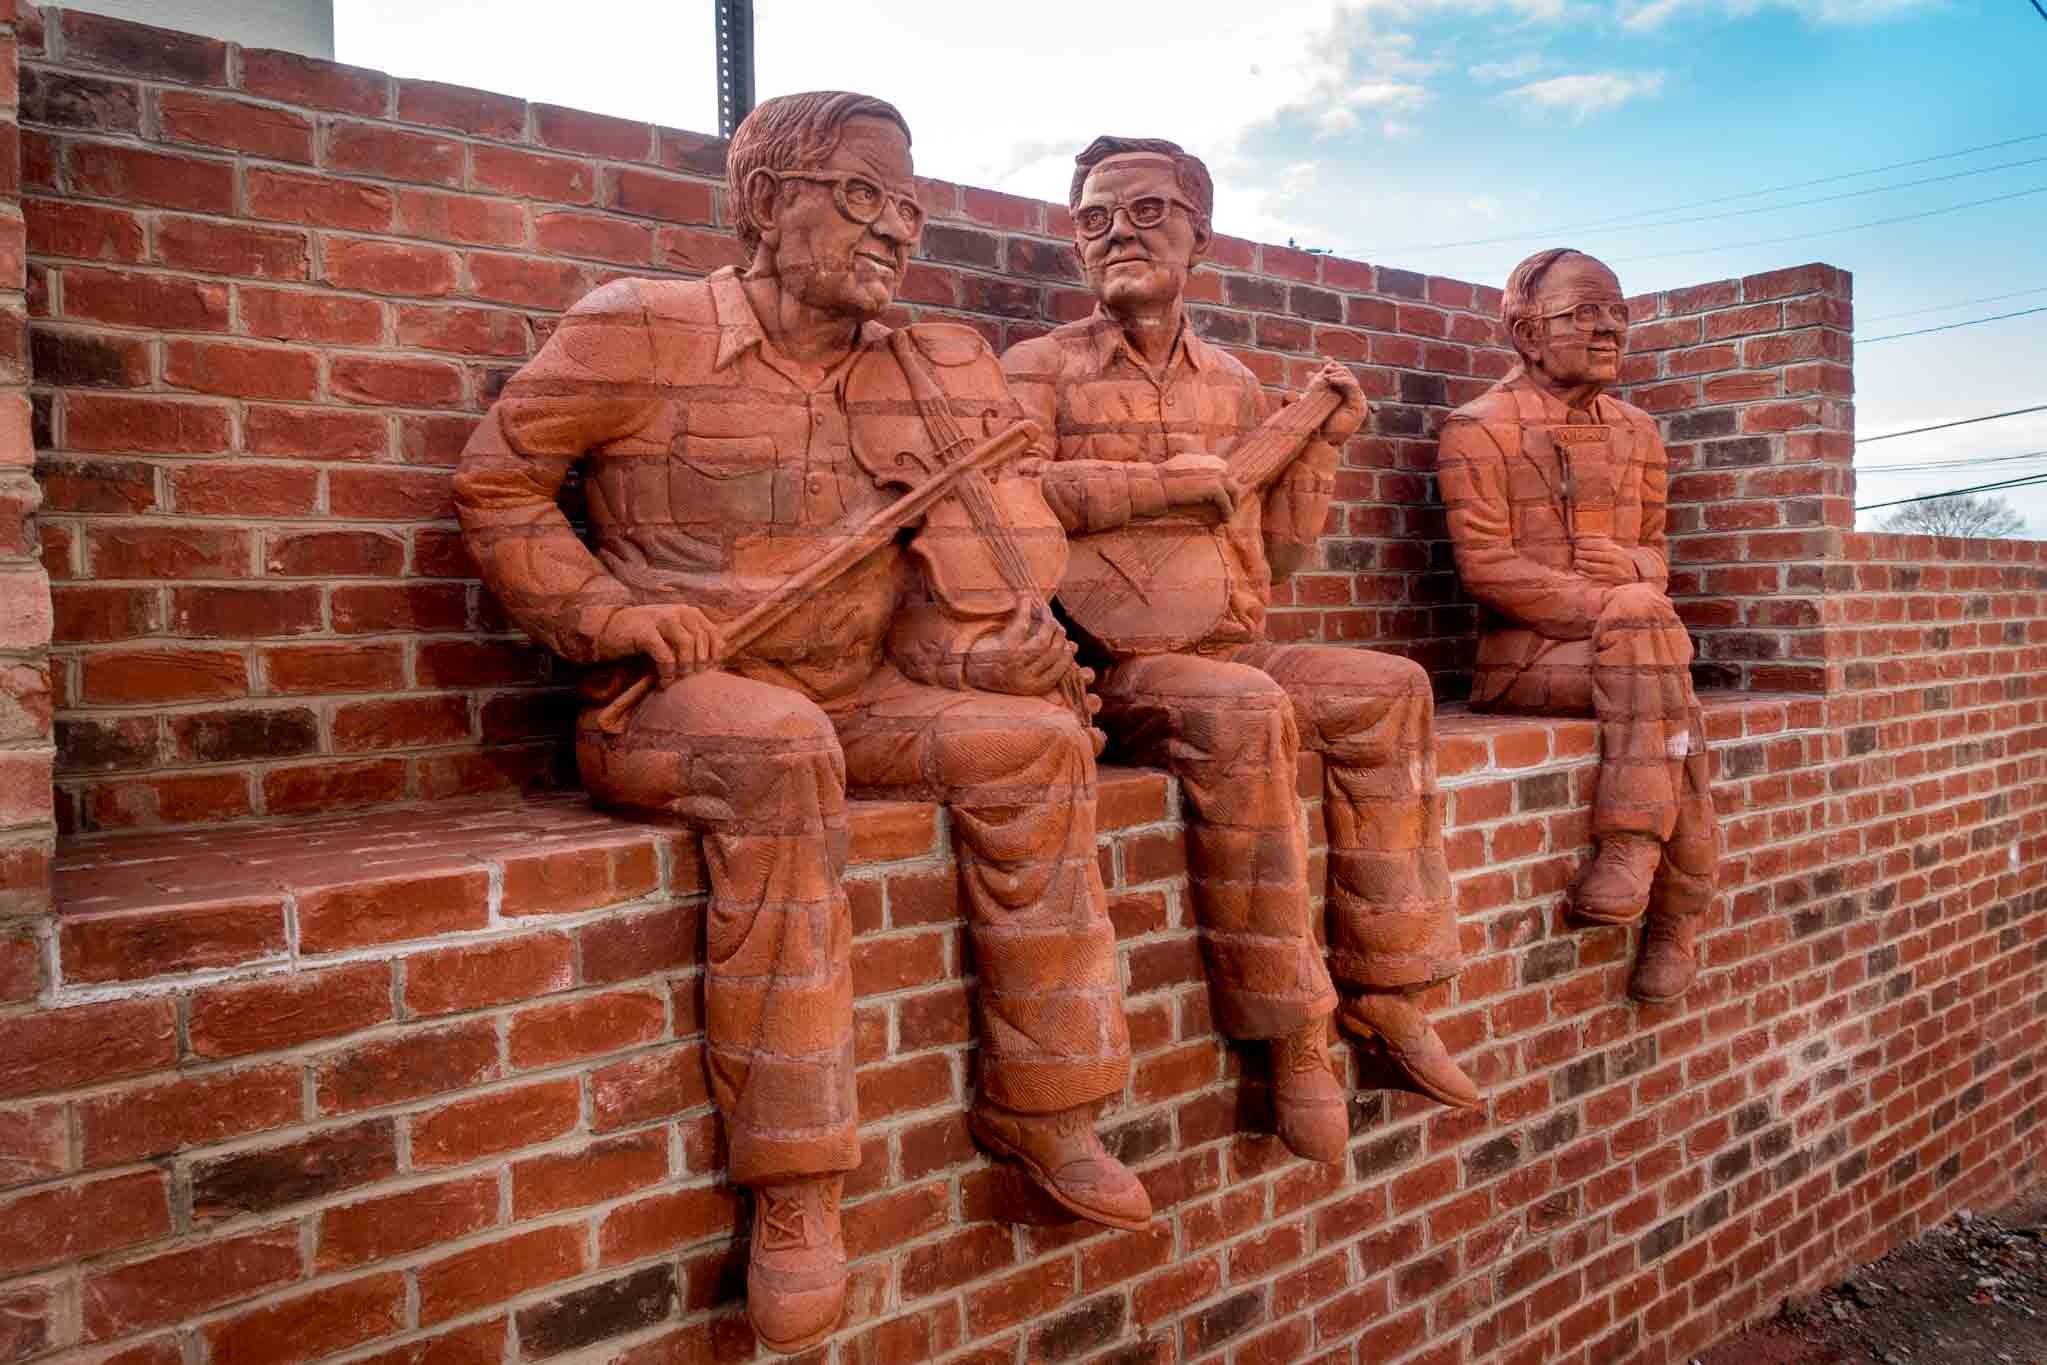 Brick sculptures of musicians sitting on a wall